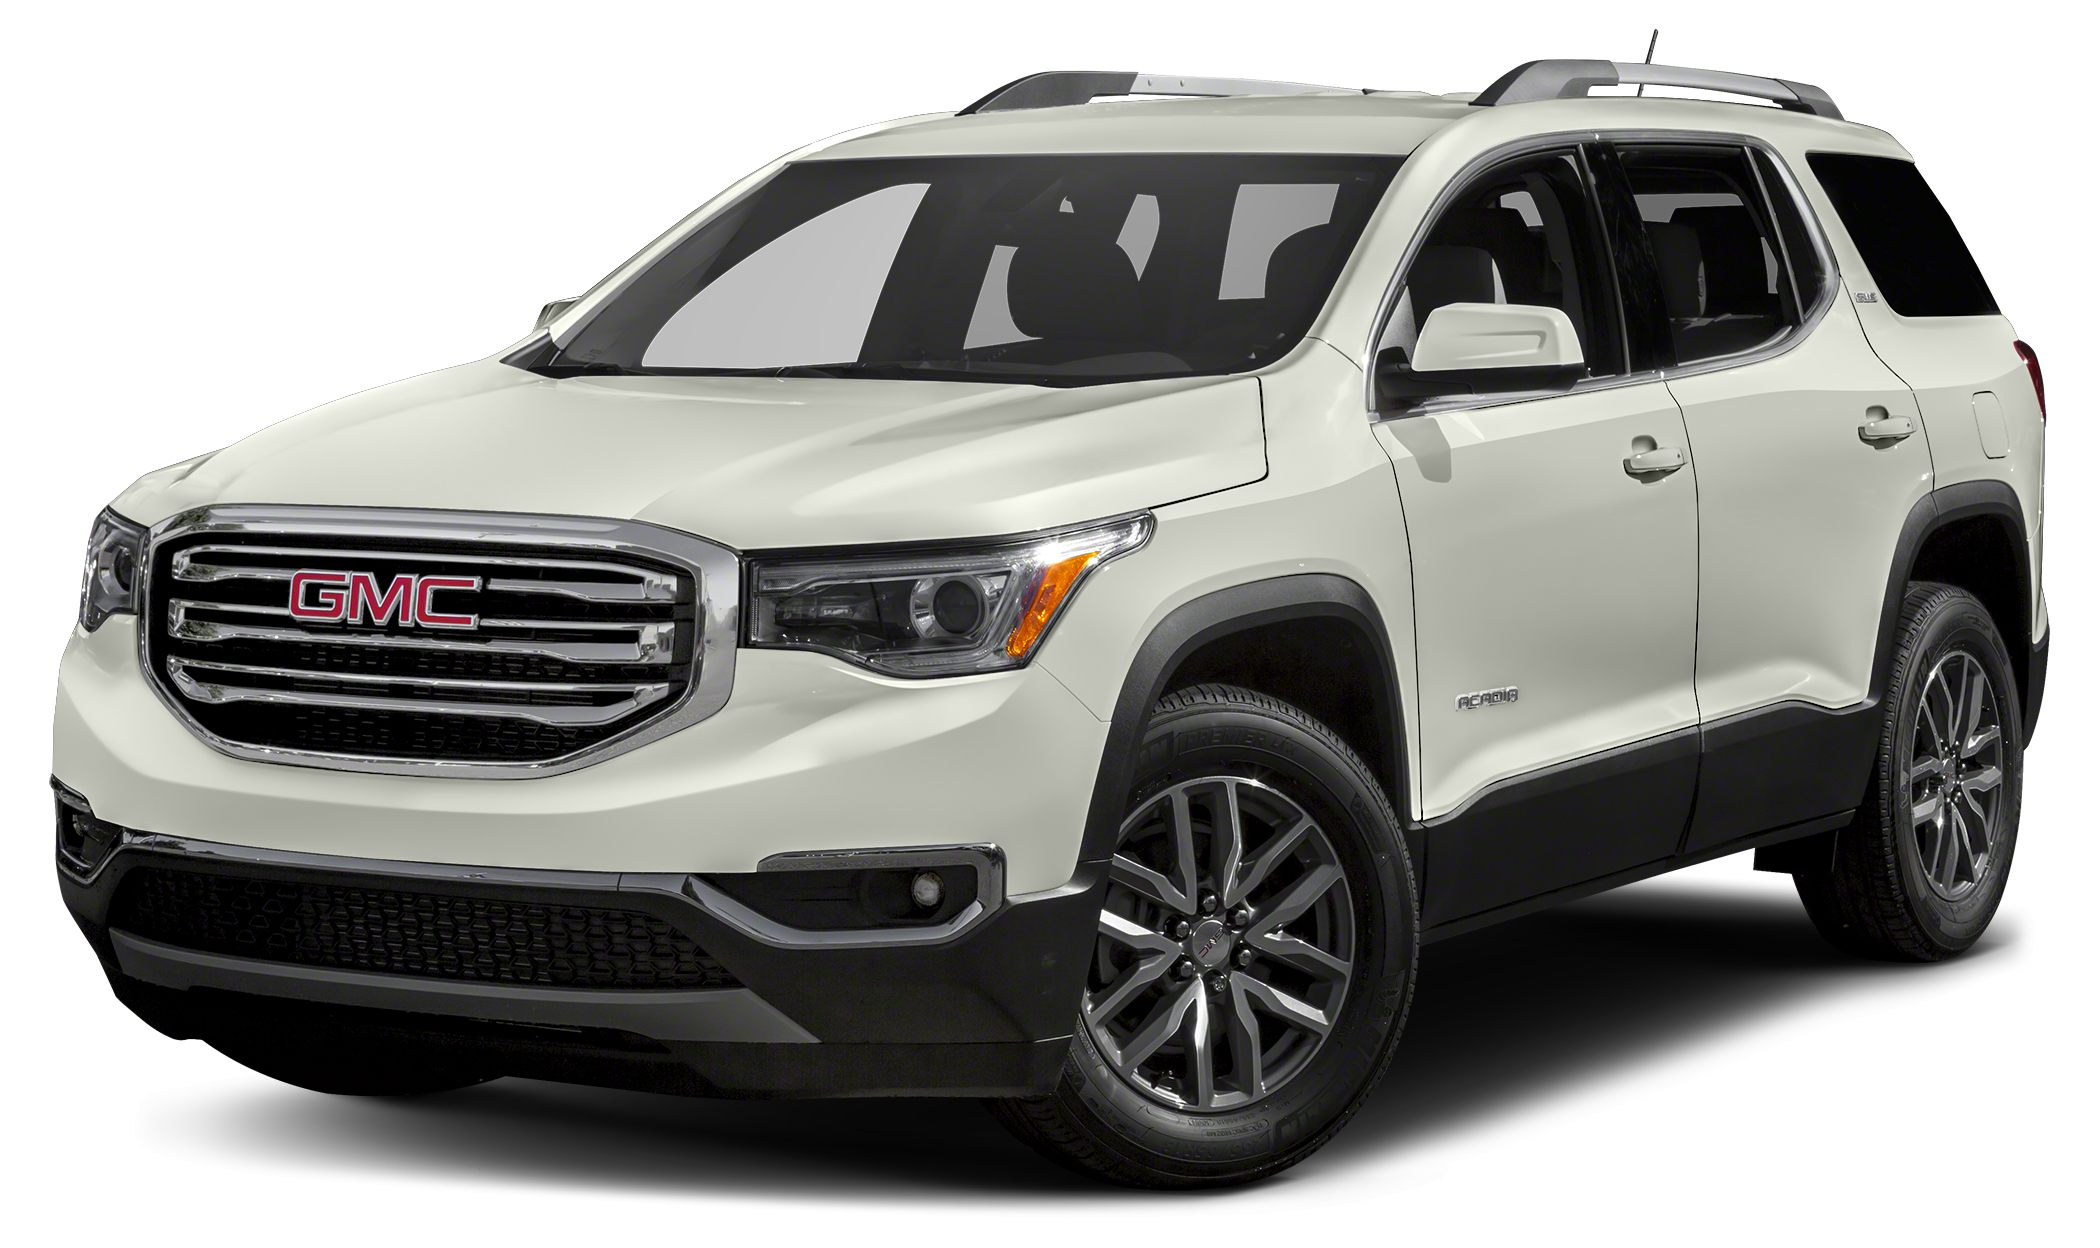 2018 GMC Acadia SLT-1 This 2018 GMC Acadia SLT-1 is complete with top-features such as the backup